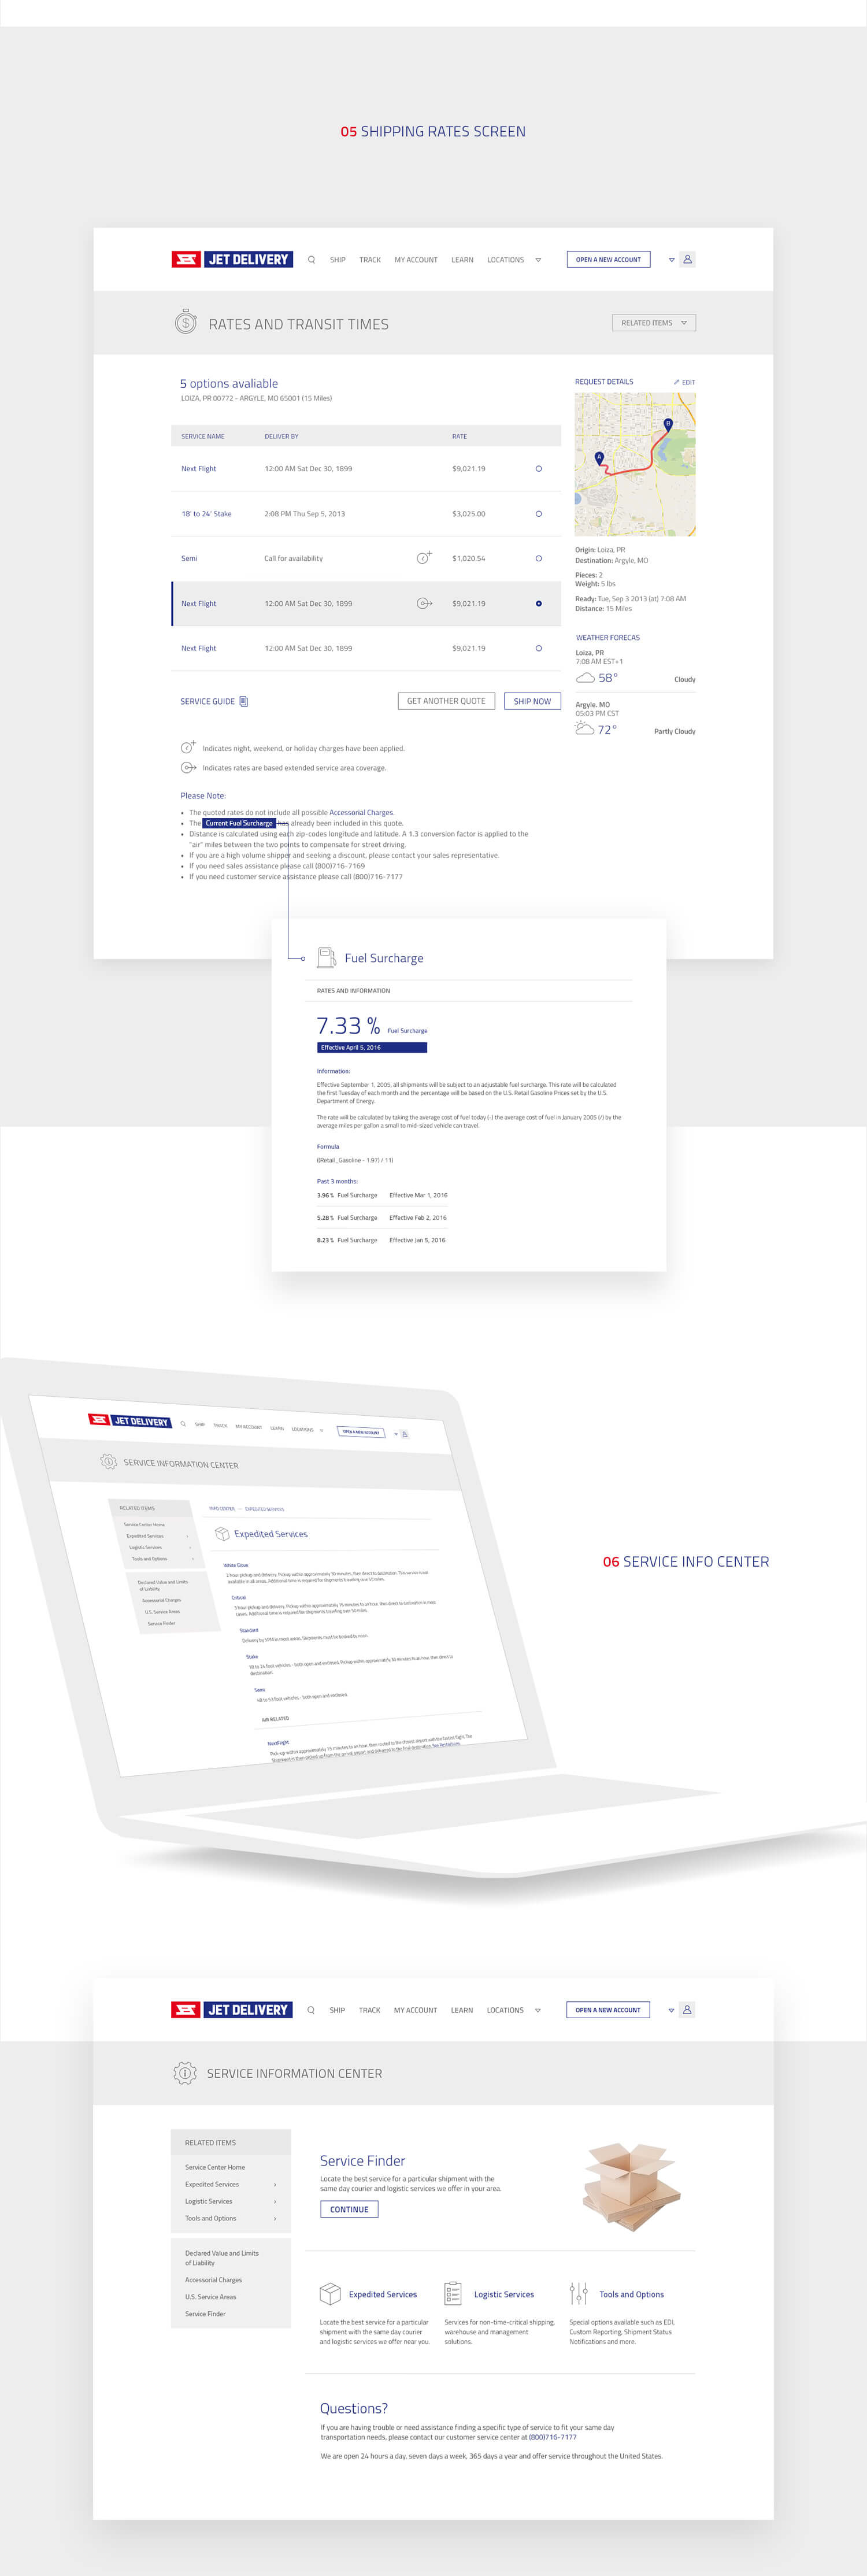 Jet Delivery service website design and branding by Finsweet